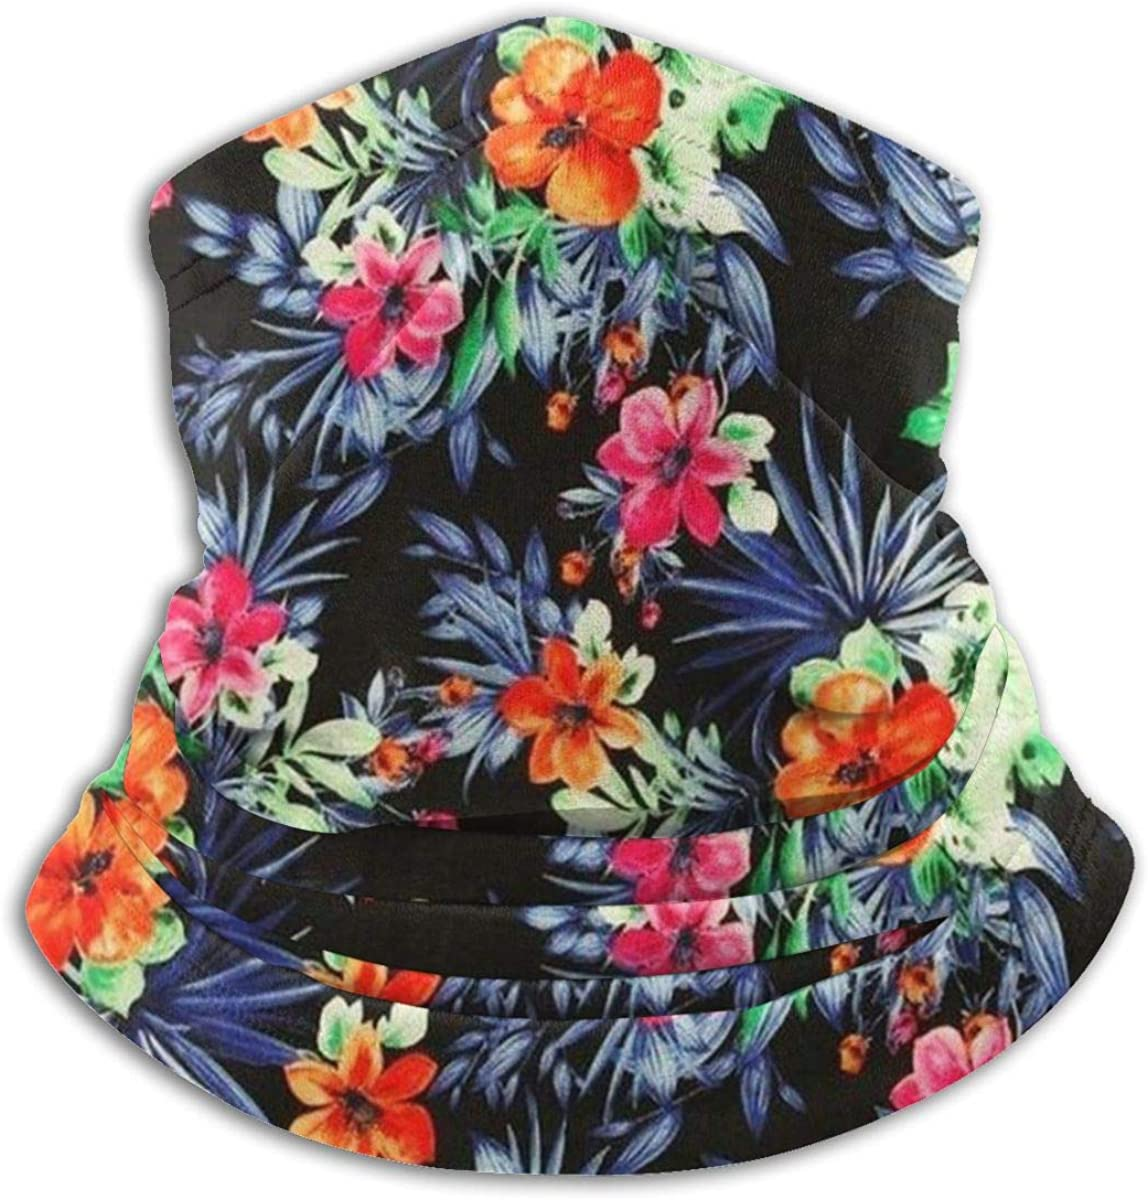 Tropical Print Wallpaper Flowers Background And Image Hawaiian Floral. Neck Warmer Scarf Gaiter Face Mask Bandanas For Dust Cold Weather Winter Outdoors Festivals Sports For Men And Women